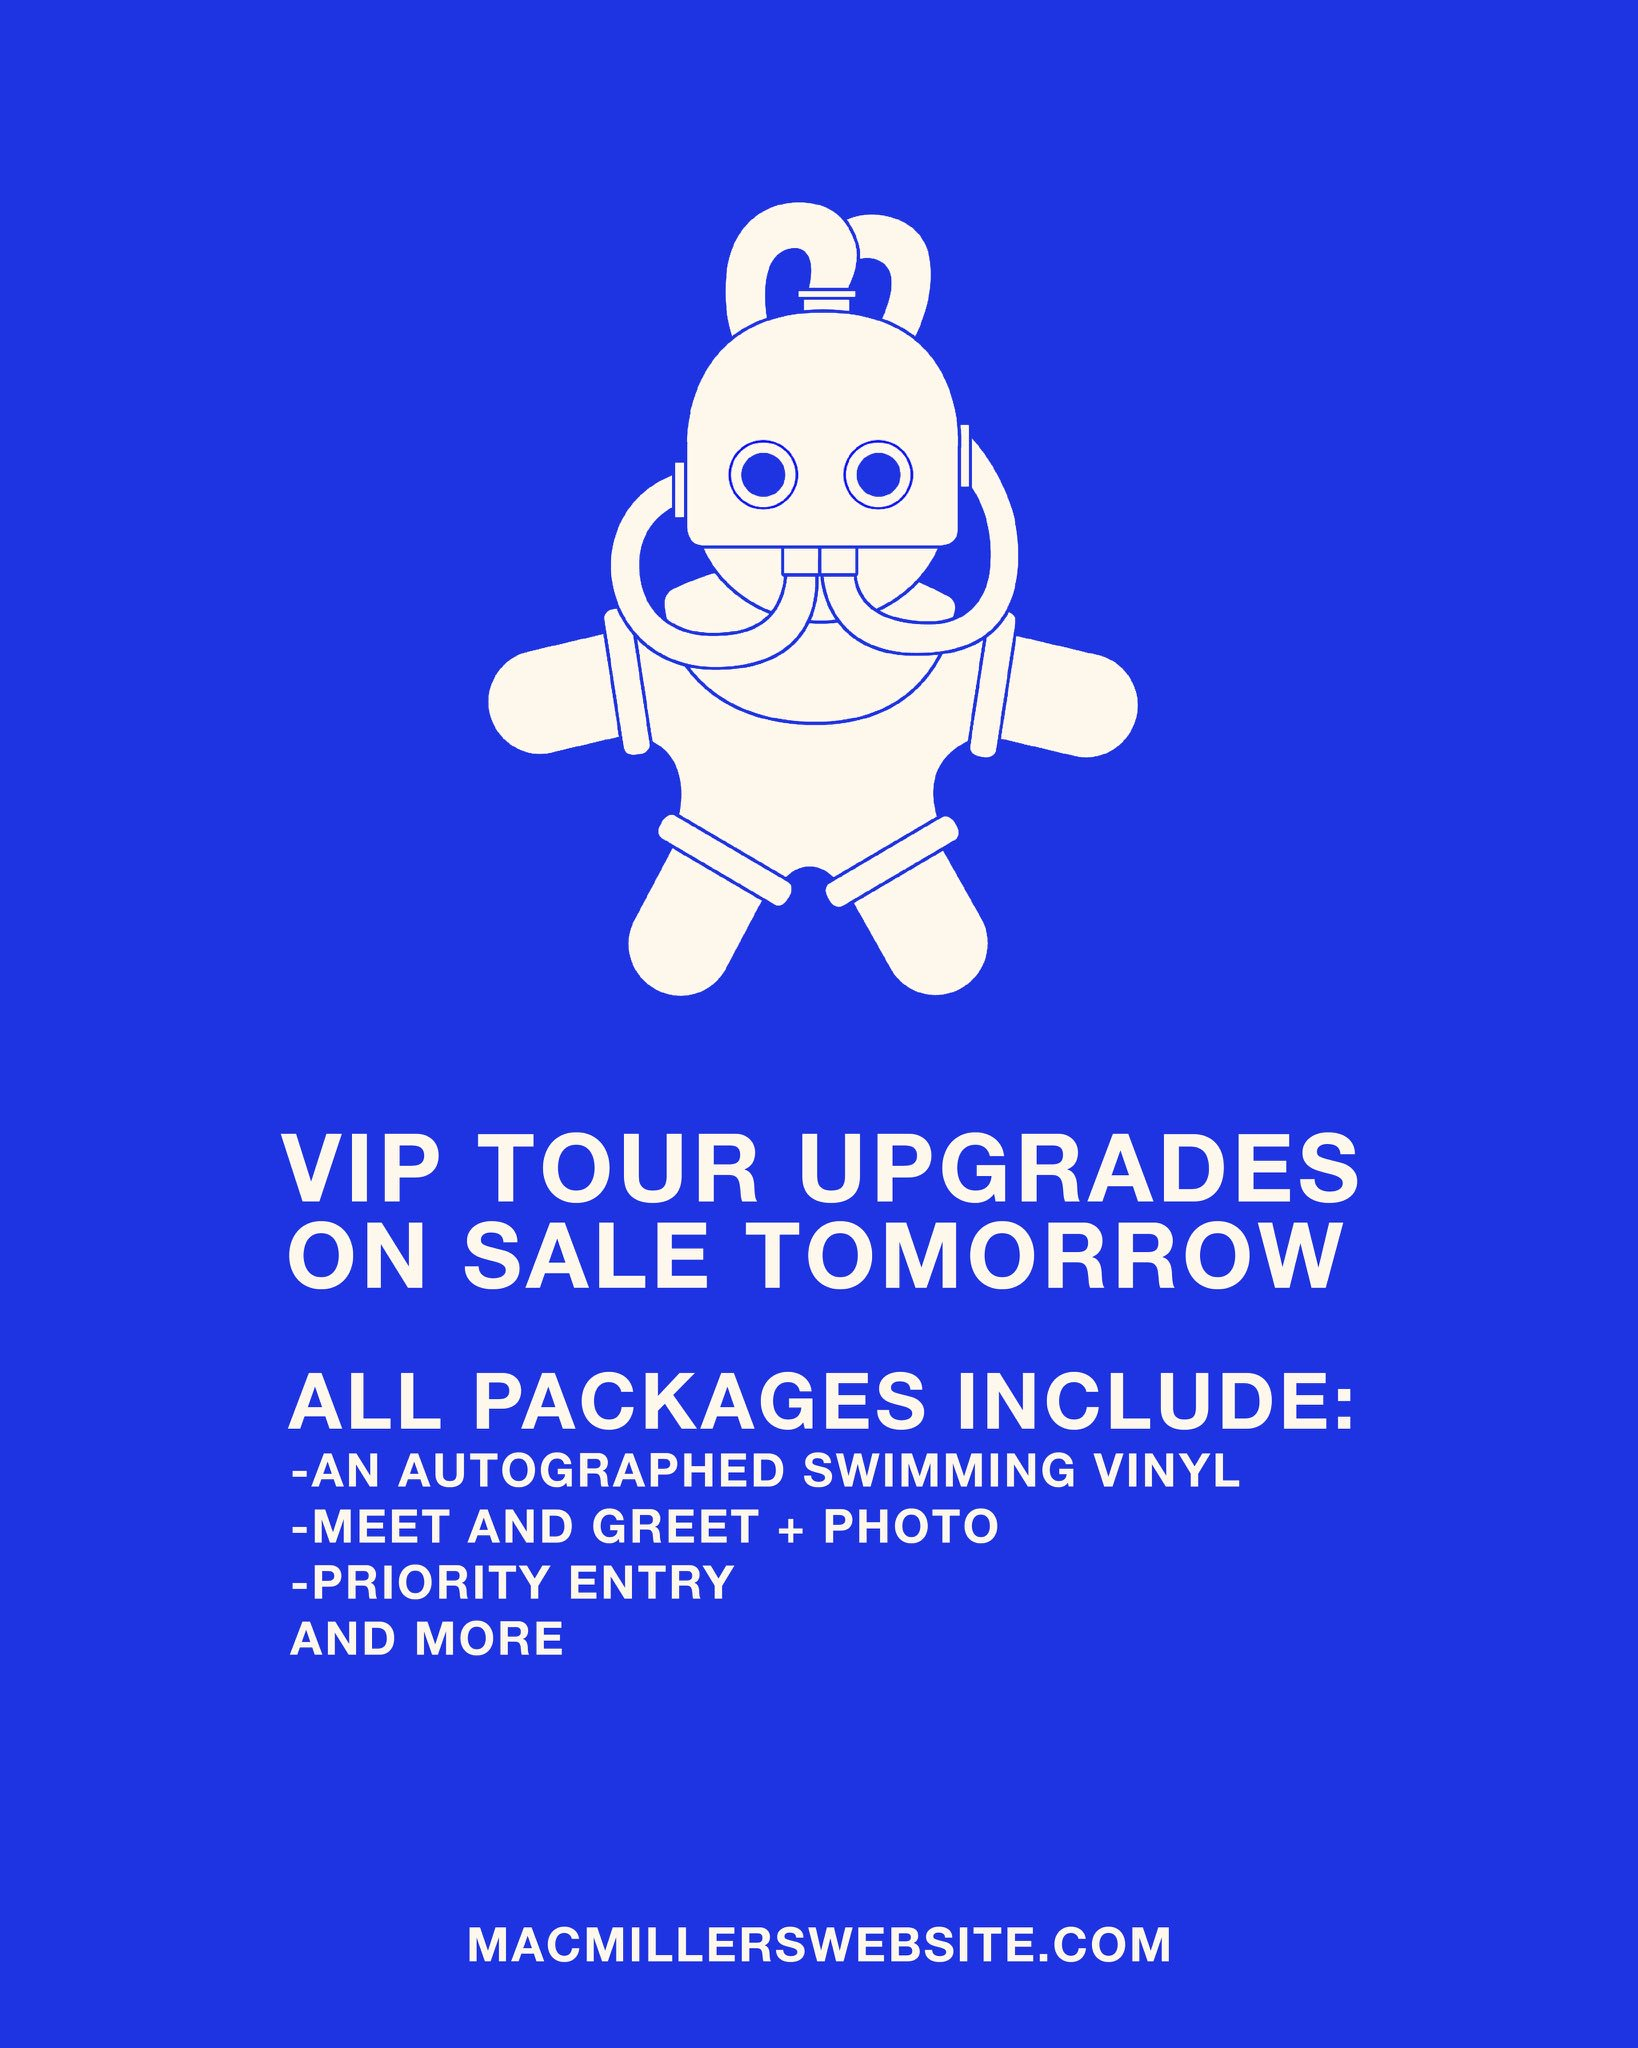 Hey guys,  VIP Tour Packages go on sale tomorrow at 10AM Local.  https://t.co/8gFVJLB3L0 https://t.co/LhsGSwMskI